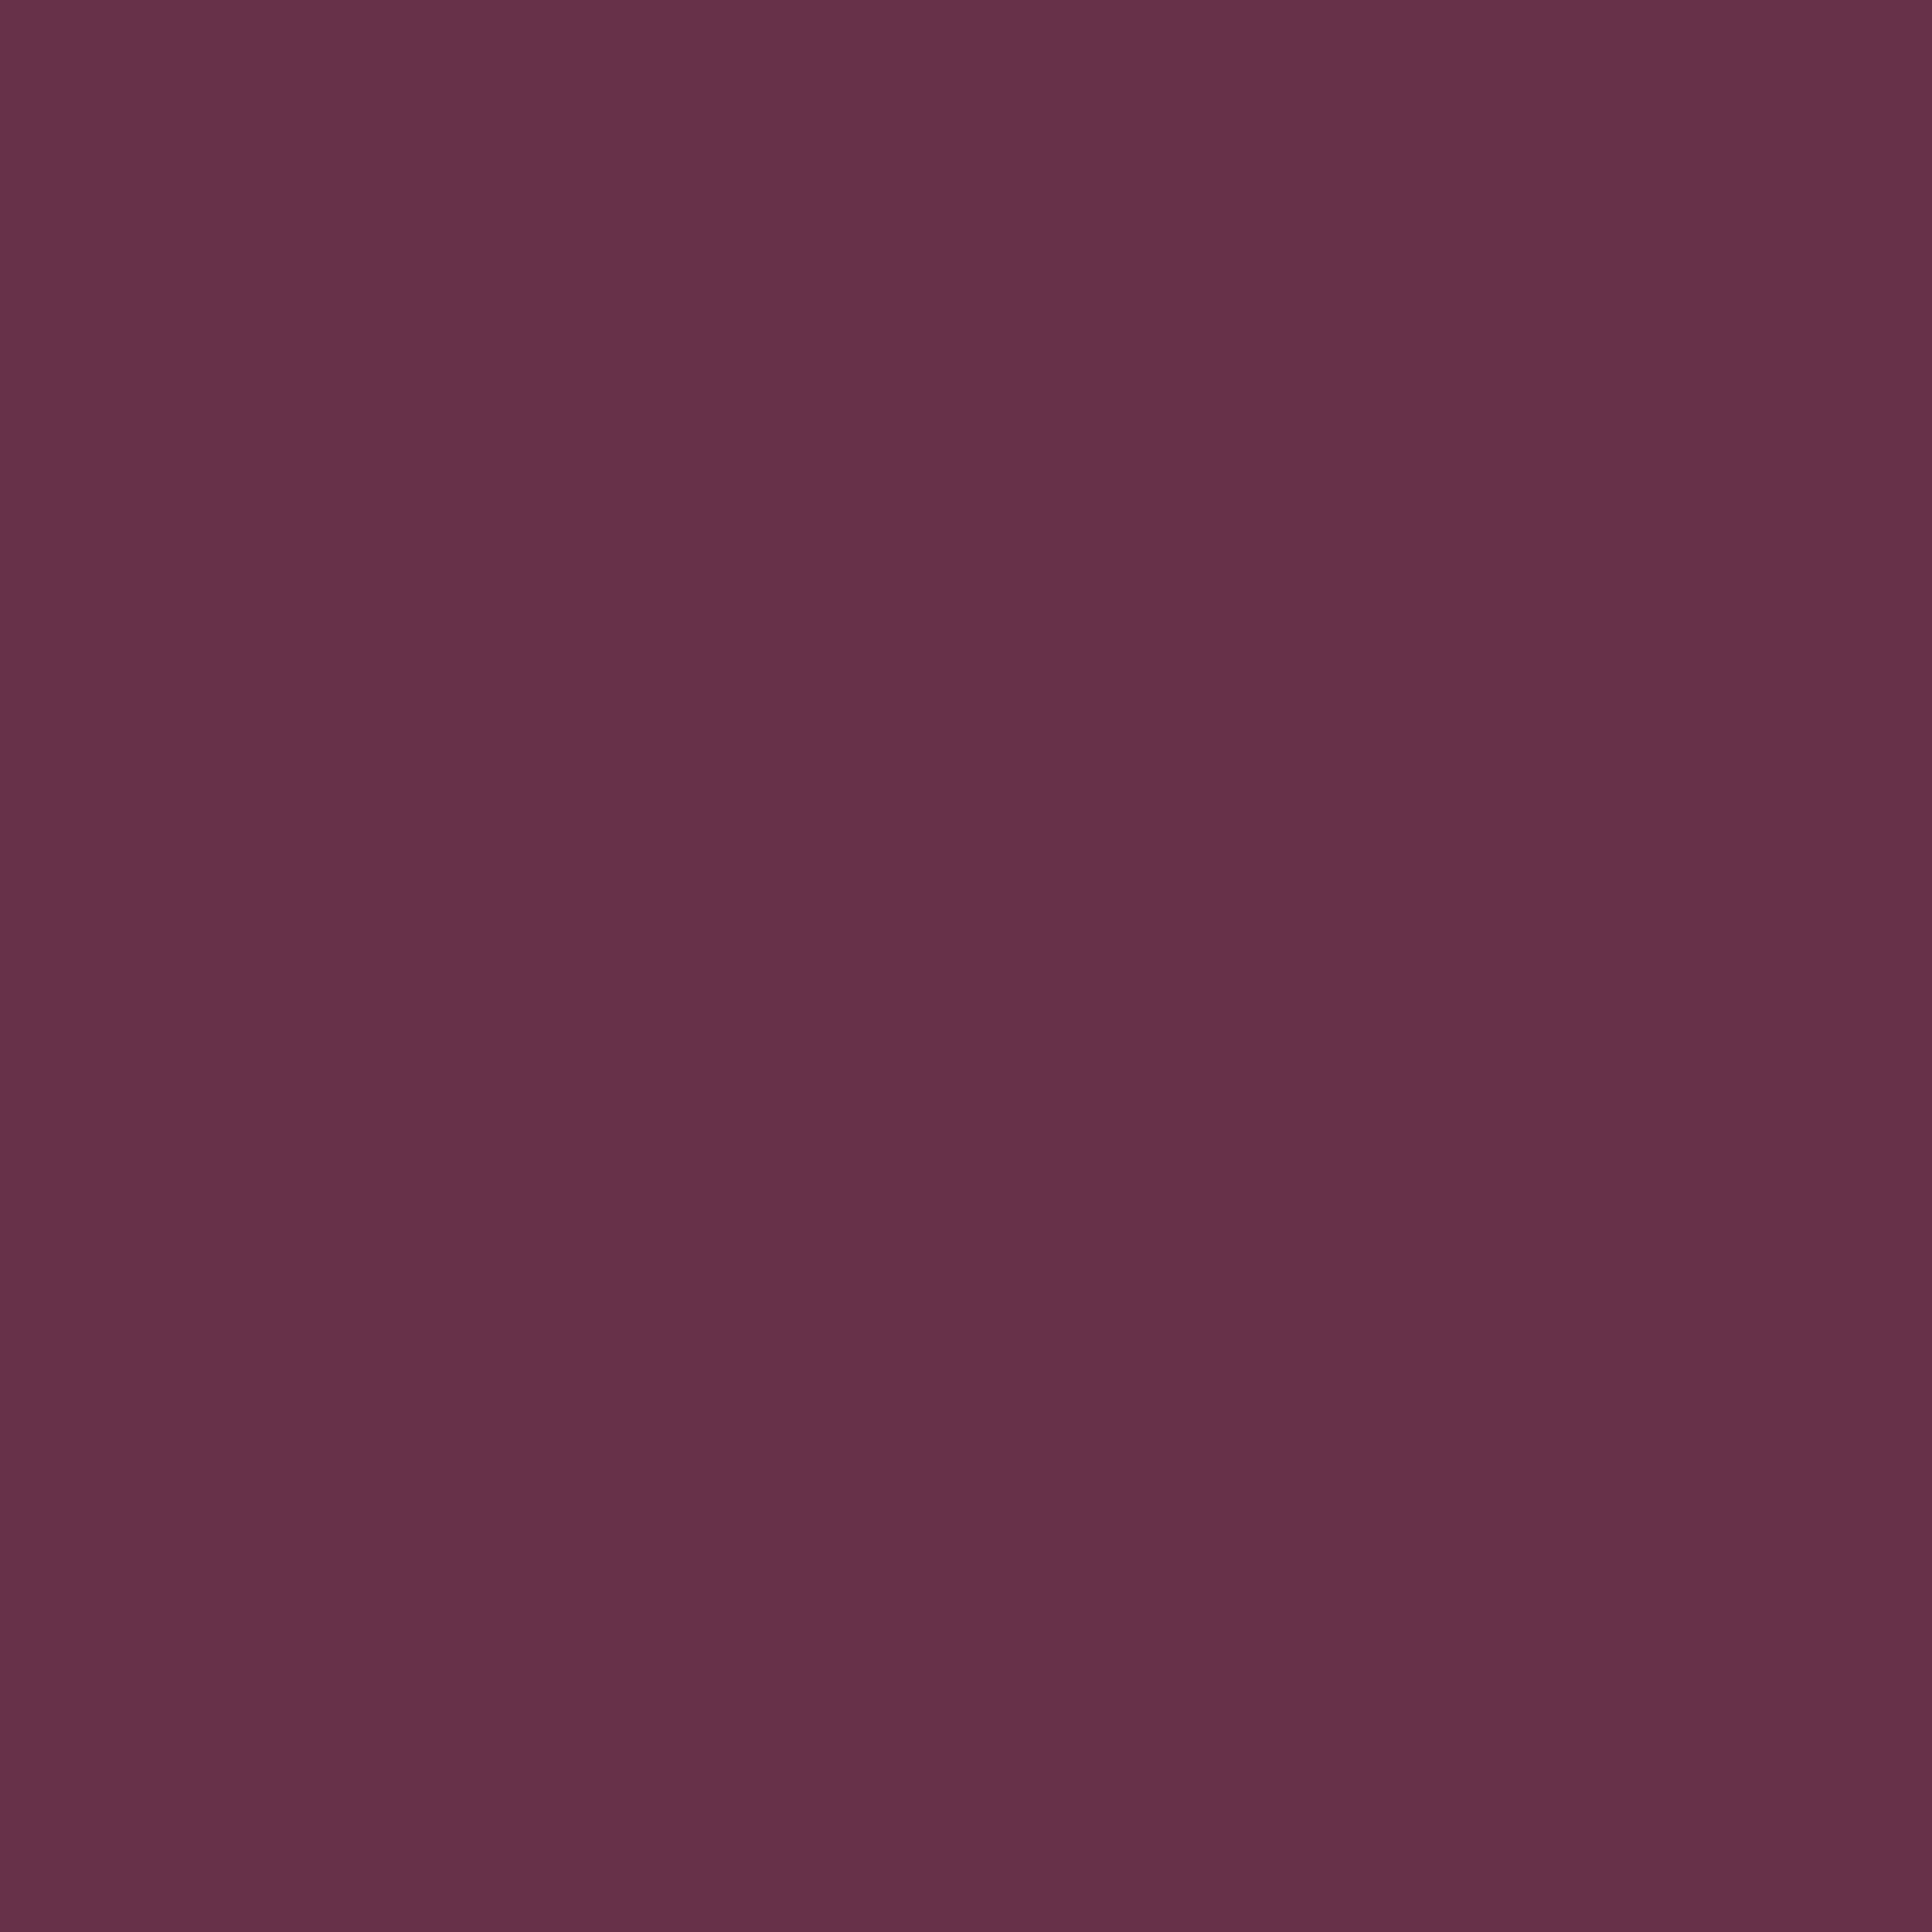 2048x2048 Old Mauve Solid Color Background